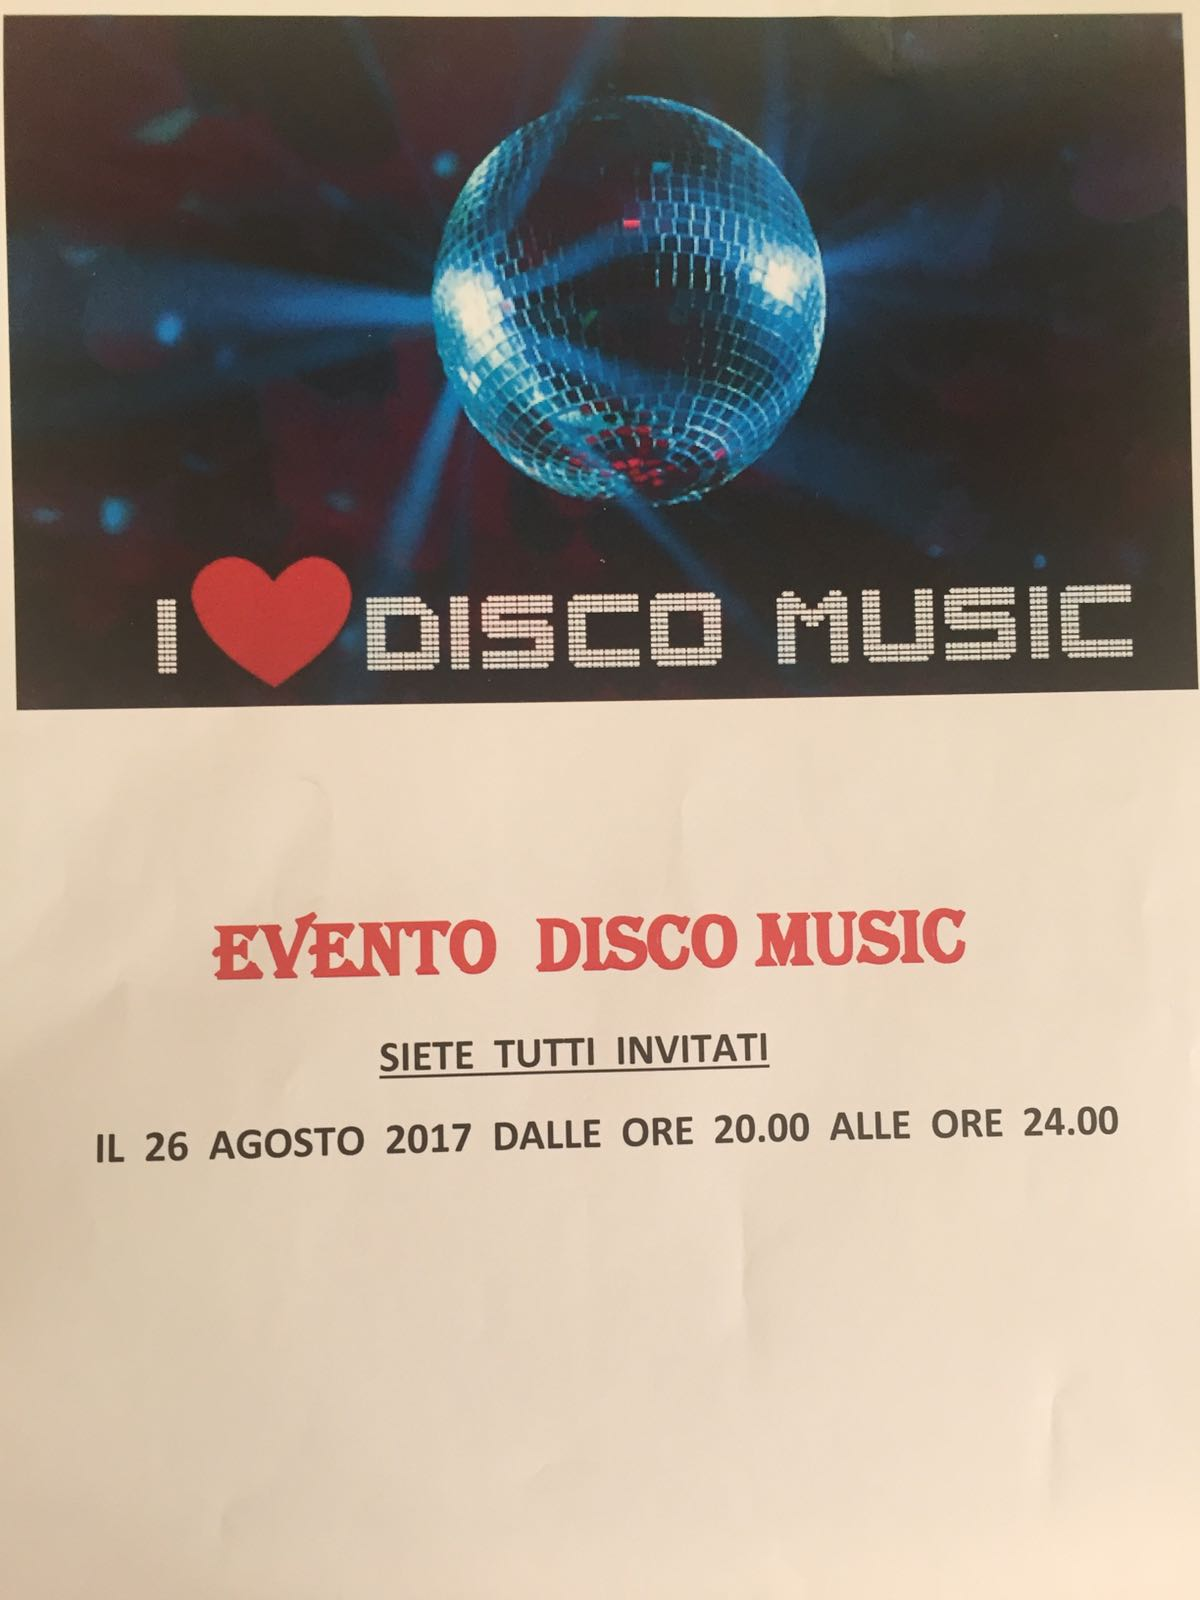 Evento disco music del 26 agosto 2017! Vieni e divertiti con noi!!!